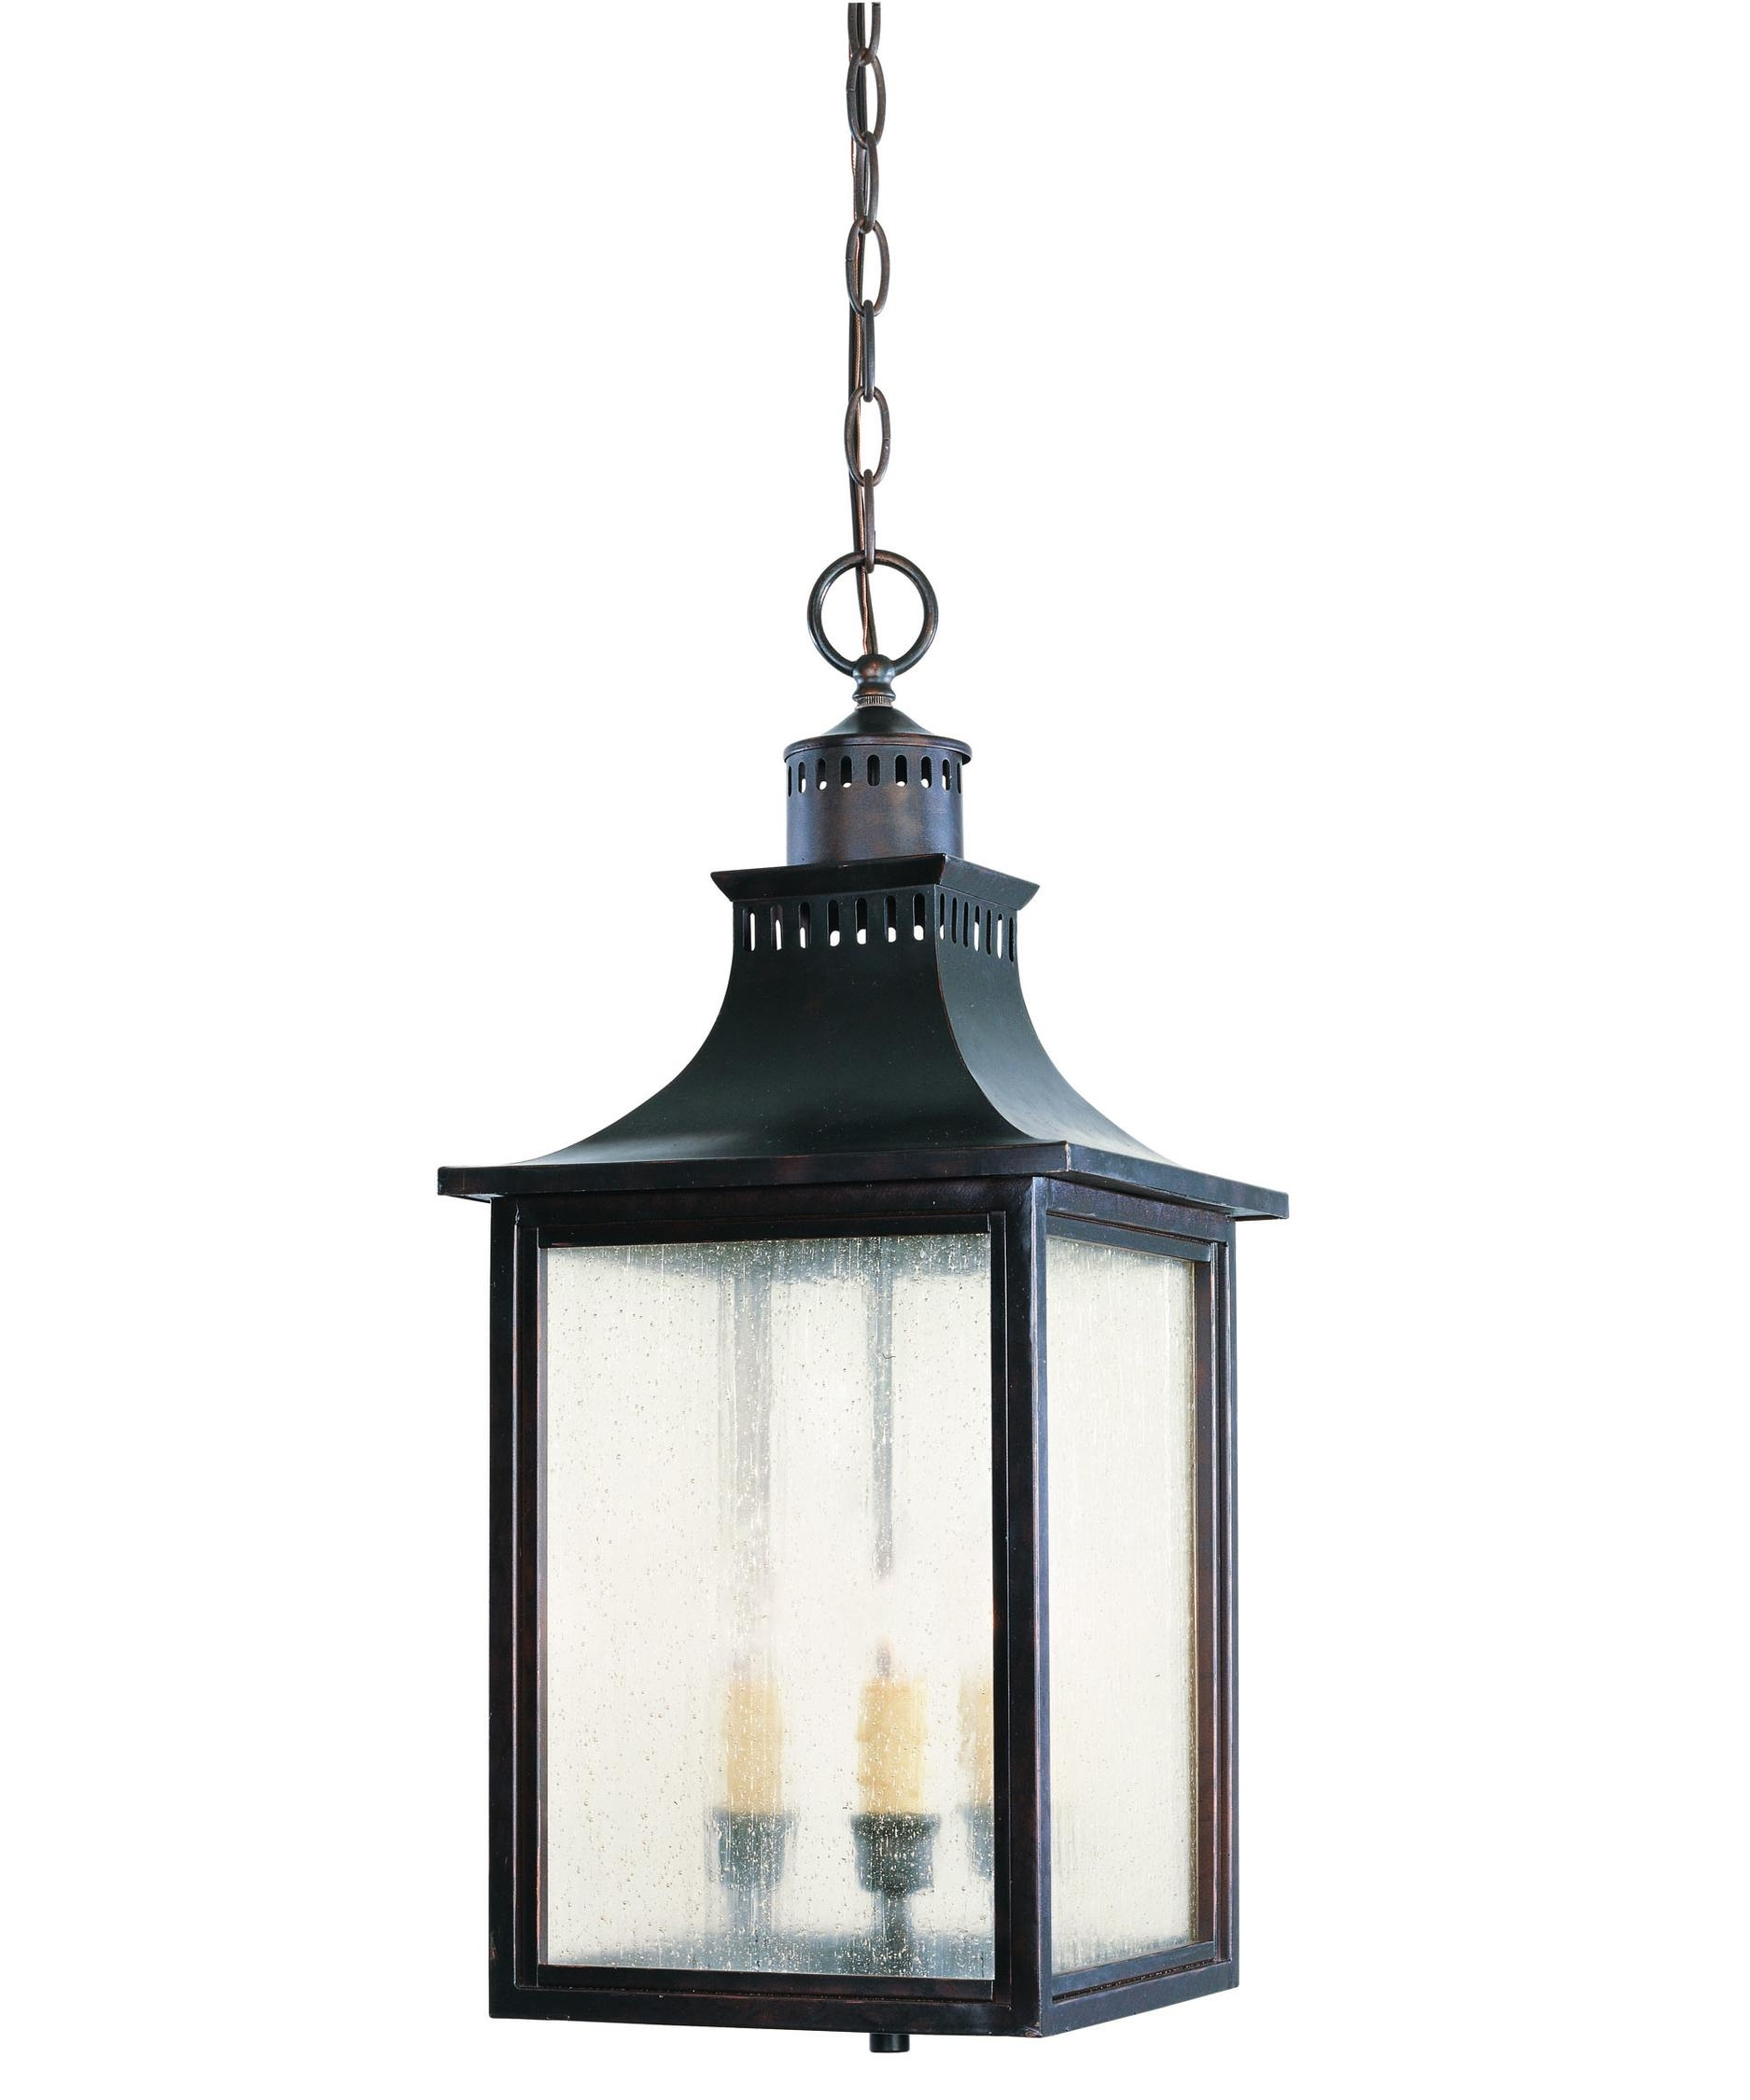 Outdoor Lighting Hanging Lanterns – Outdoor Lighting Ideas Intended For Outdoor Porch Lanterns (View 10 of 20)